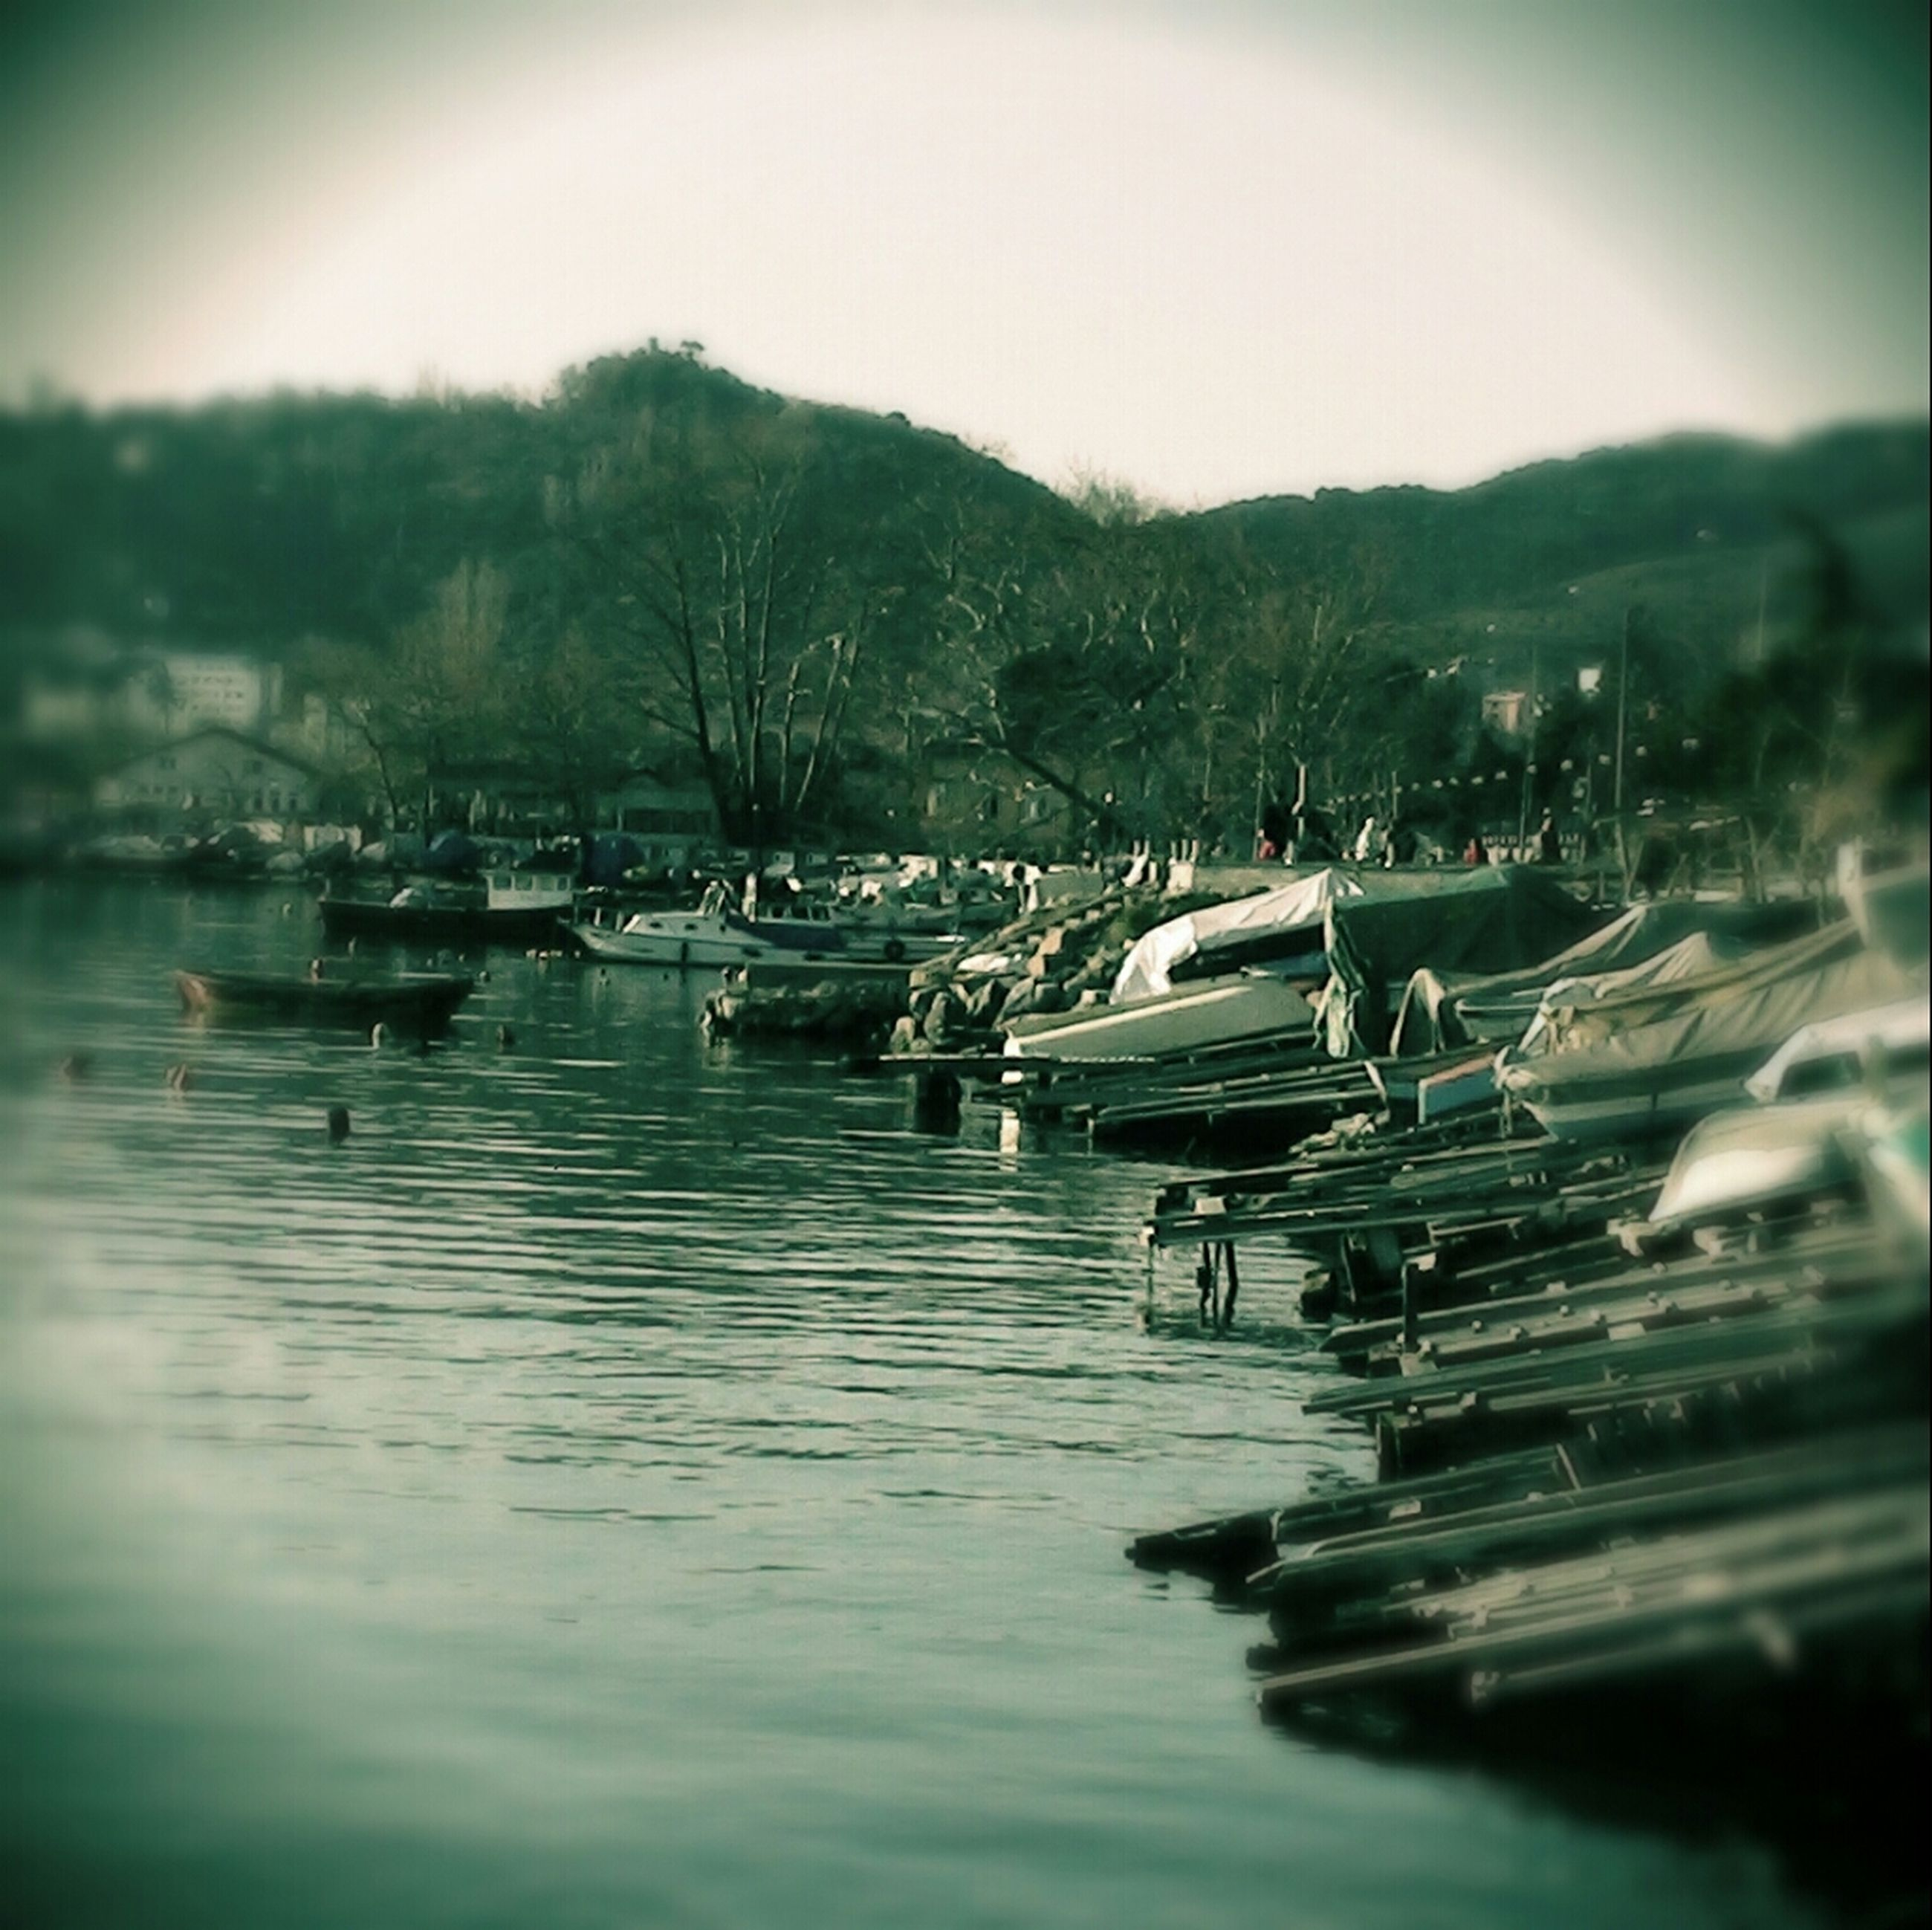 water, waterfront, tranquil scene, tranquility, lake, nature, scenics, tree, mountain, nautical vessel, reflection, boat, river, beauty in nature, sky, clear sky, day, idyllic, moored, outdoors